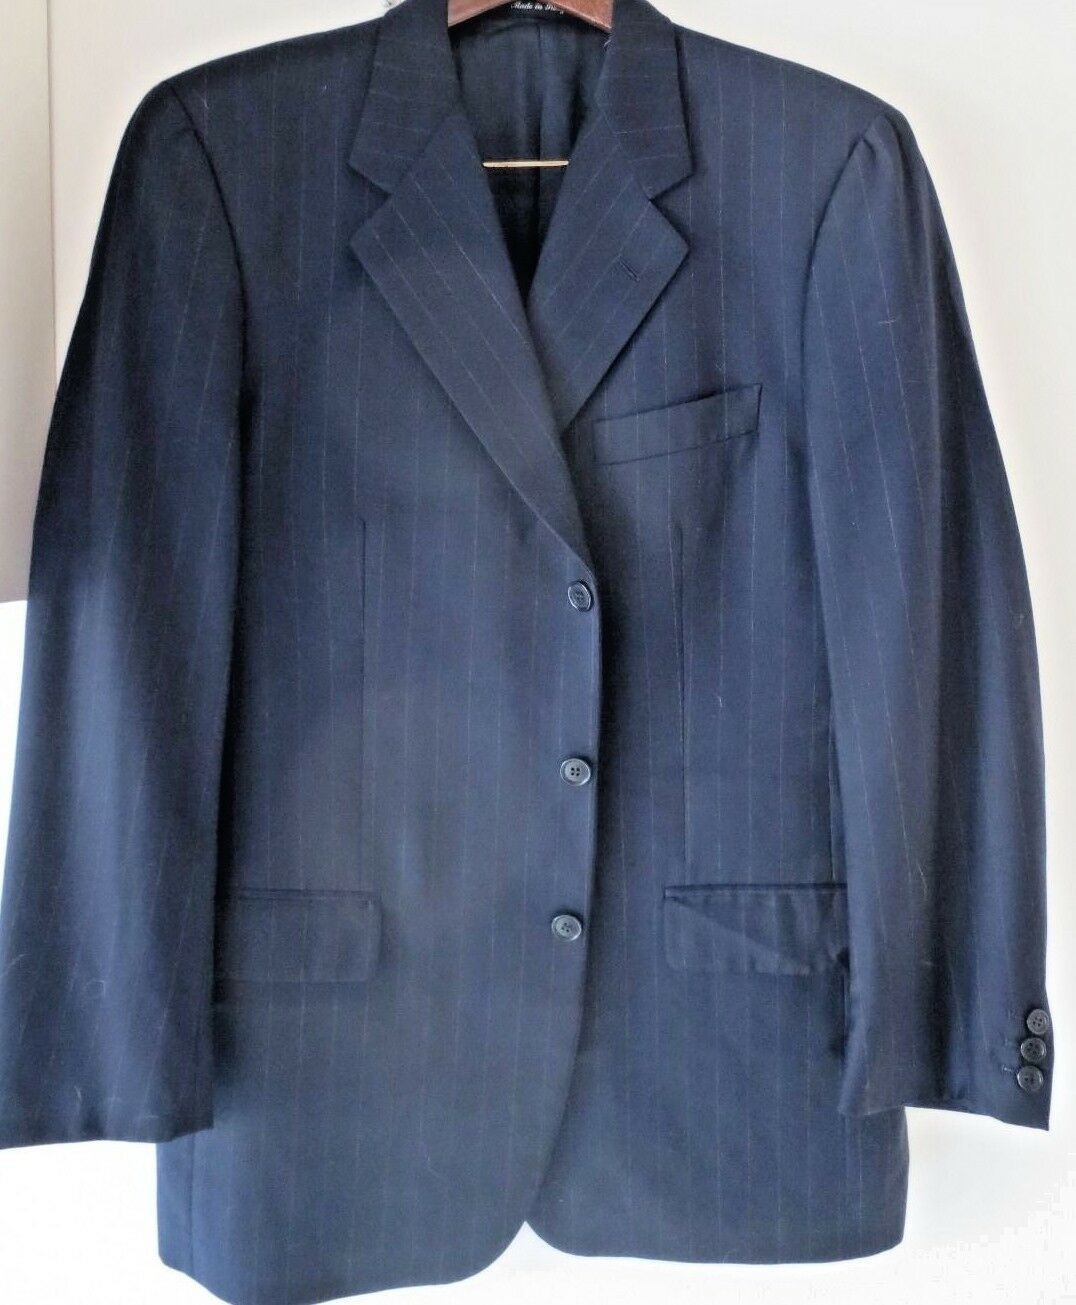 Barney's Uomo suit navy flannel /bianca stripes 3 buttons pleated/ pant cuffed pant pleated/ 40R 675092